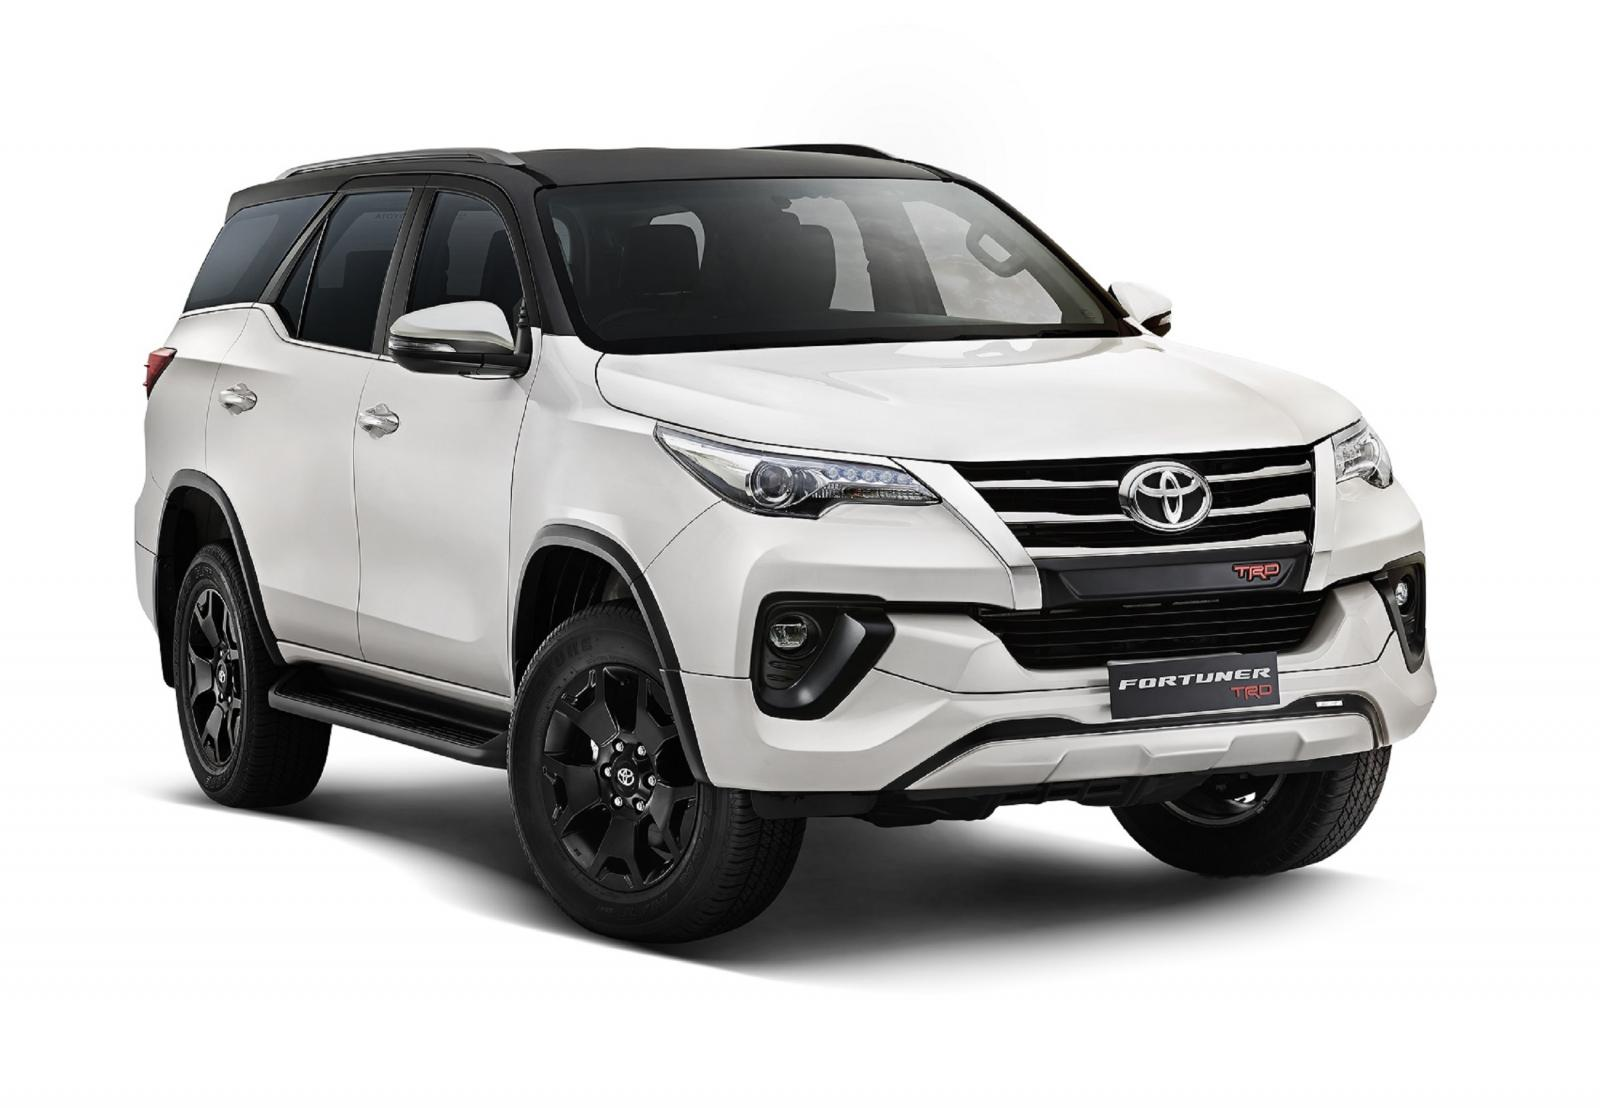 toyota-fortuner-trd-front-right-9c6a.jpg